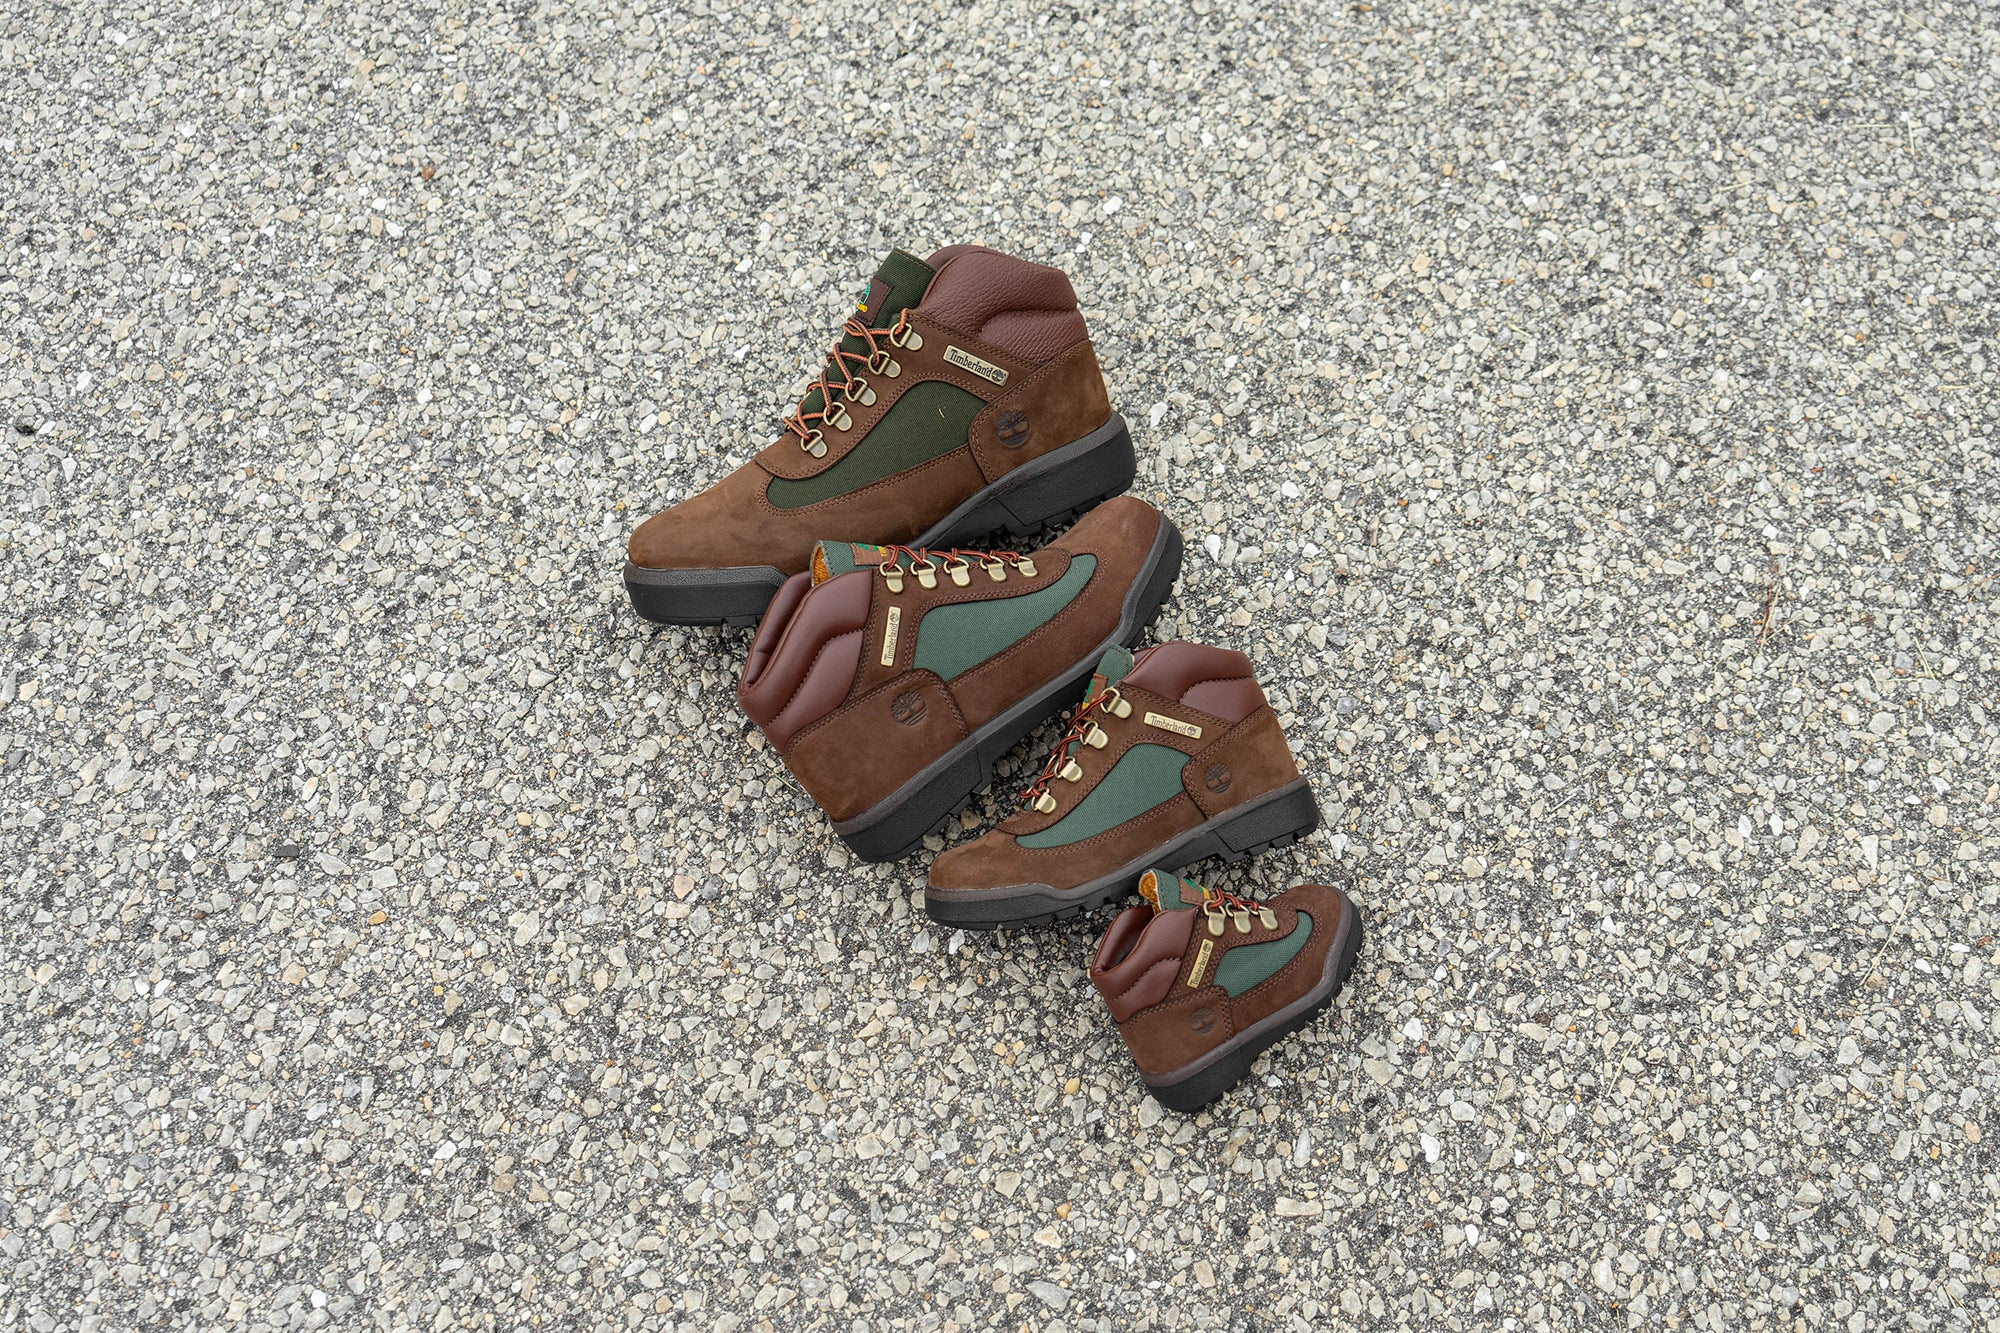 Timberland Field Boot Beef and Broccoli